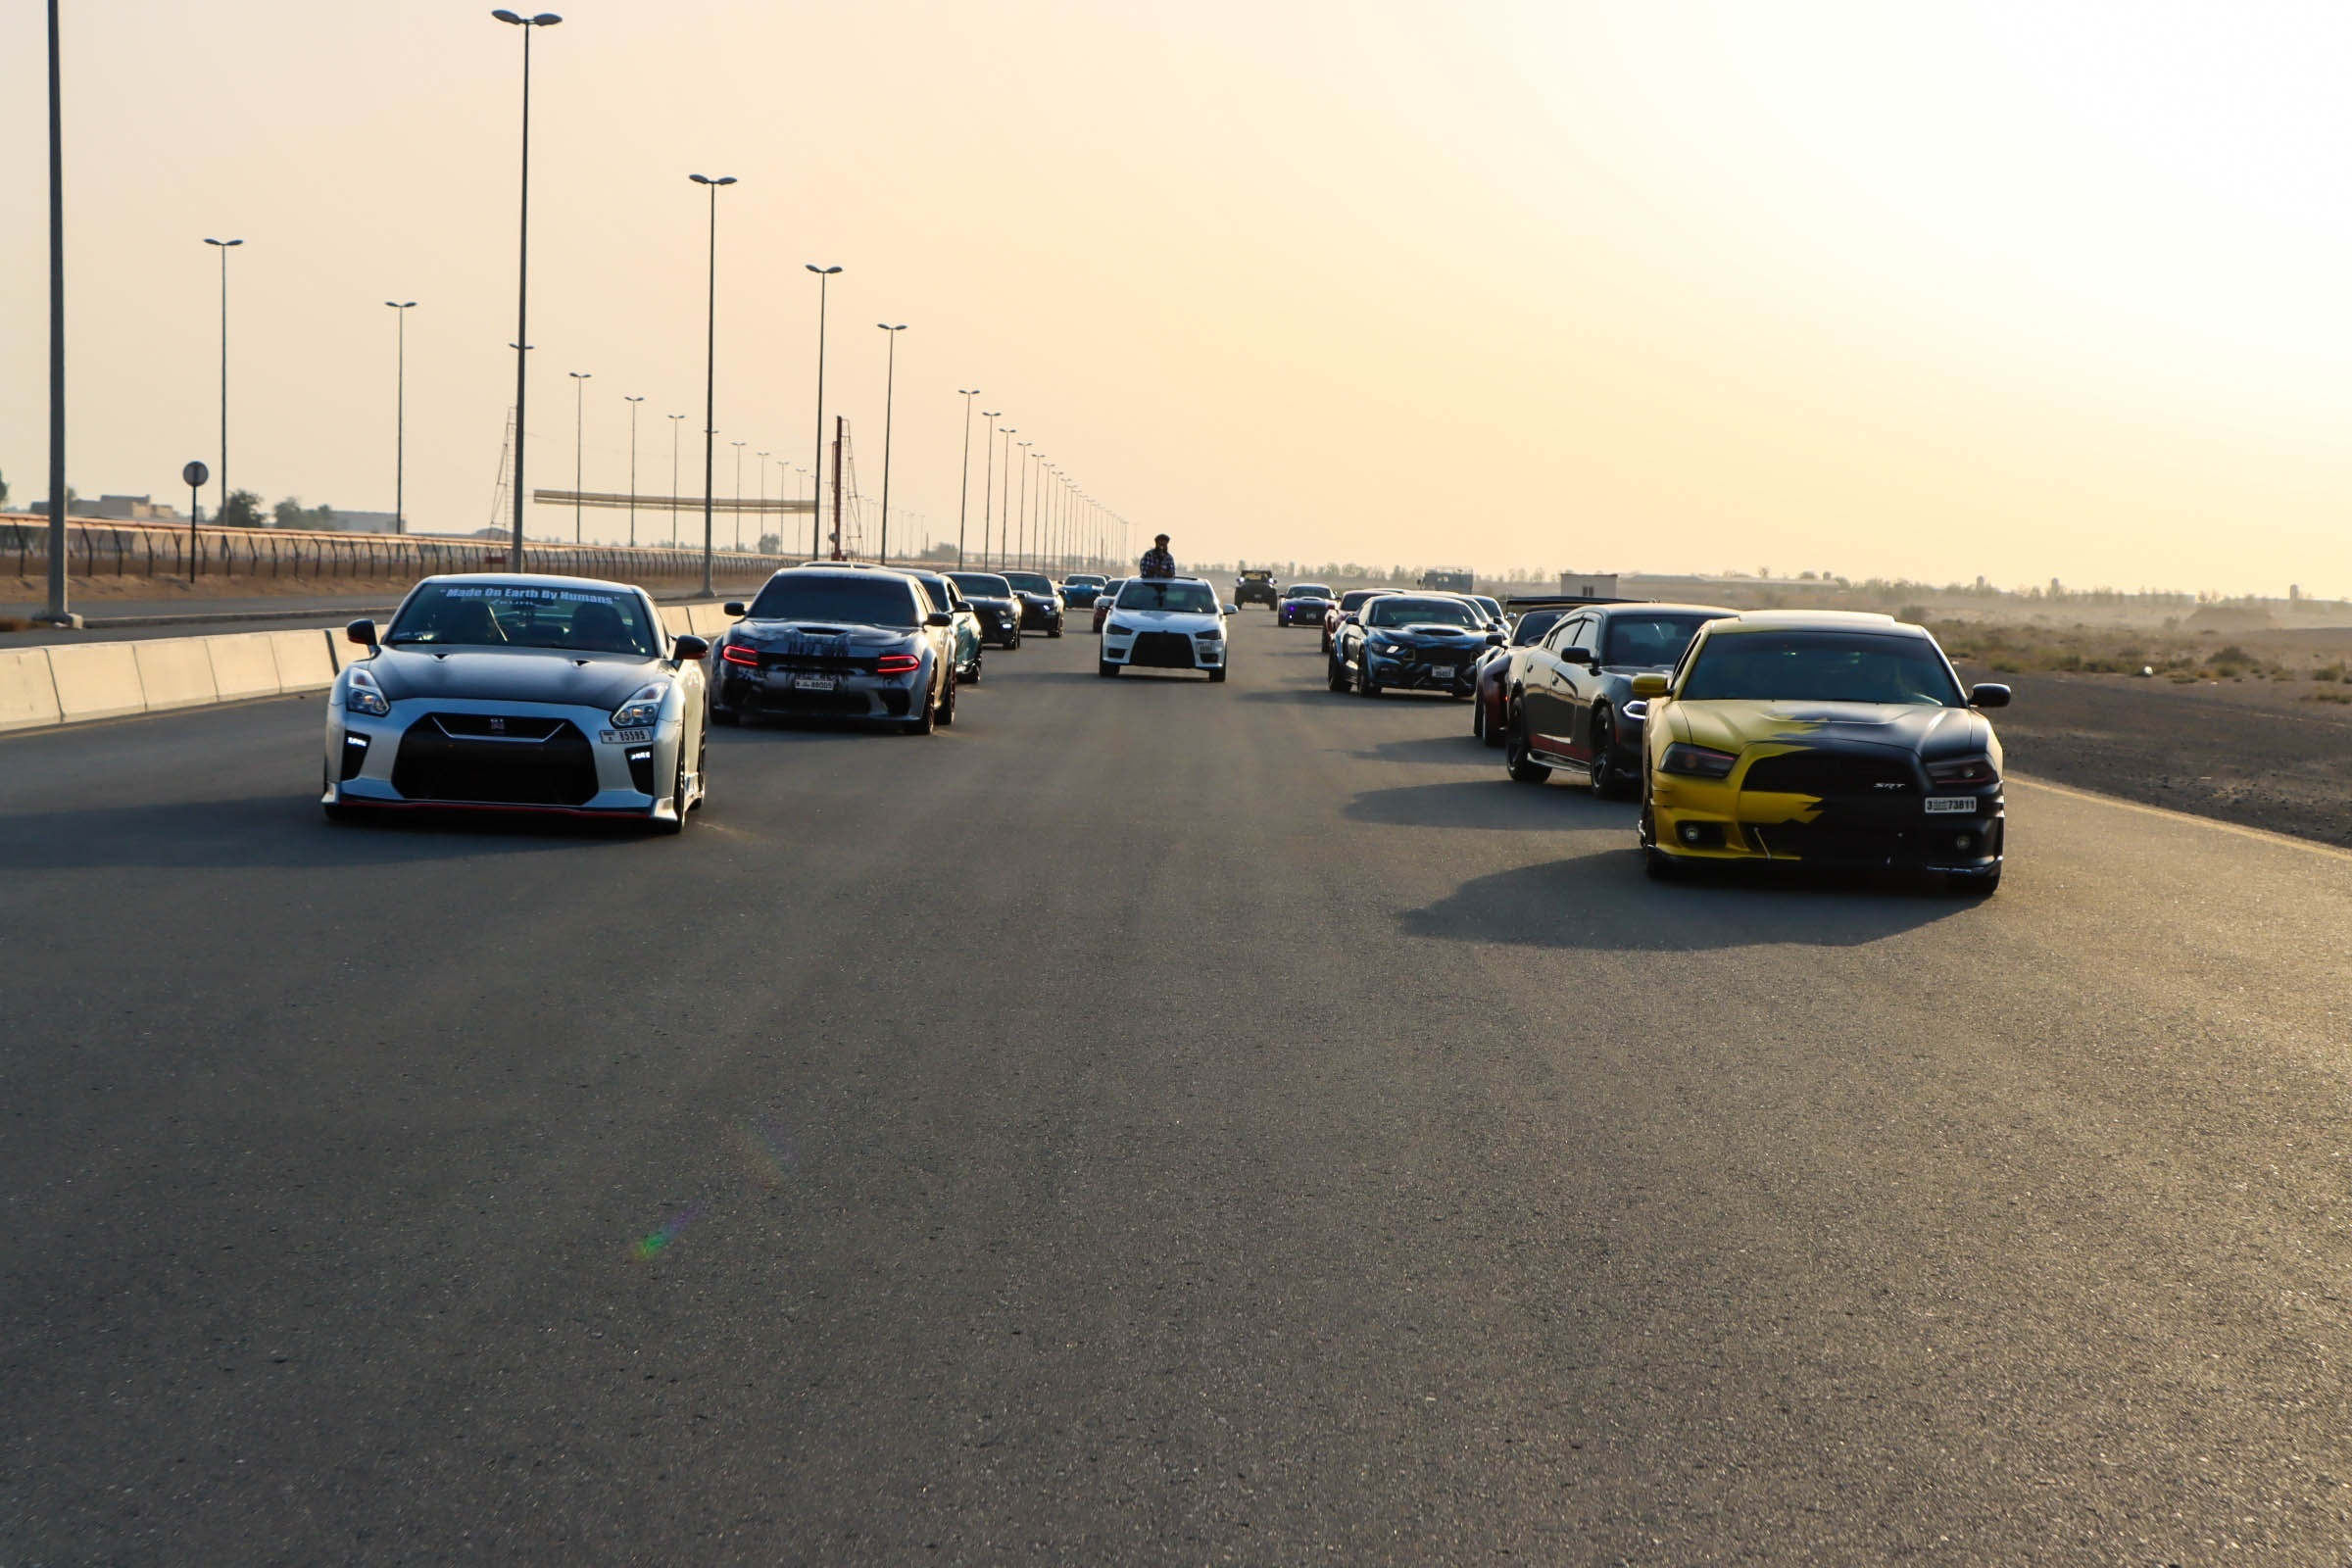 Souk Al Marfa revs up for weekend epic supercars event